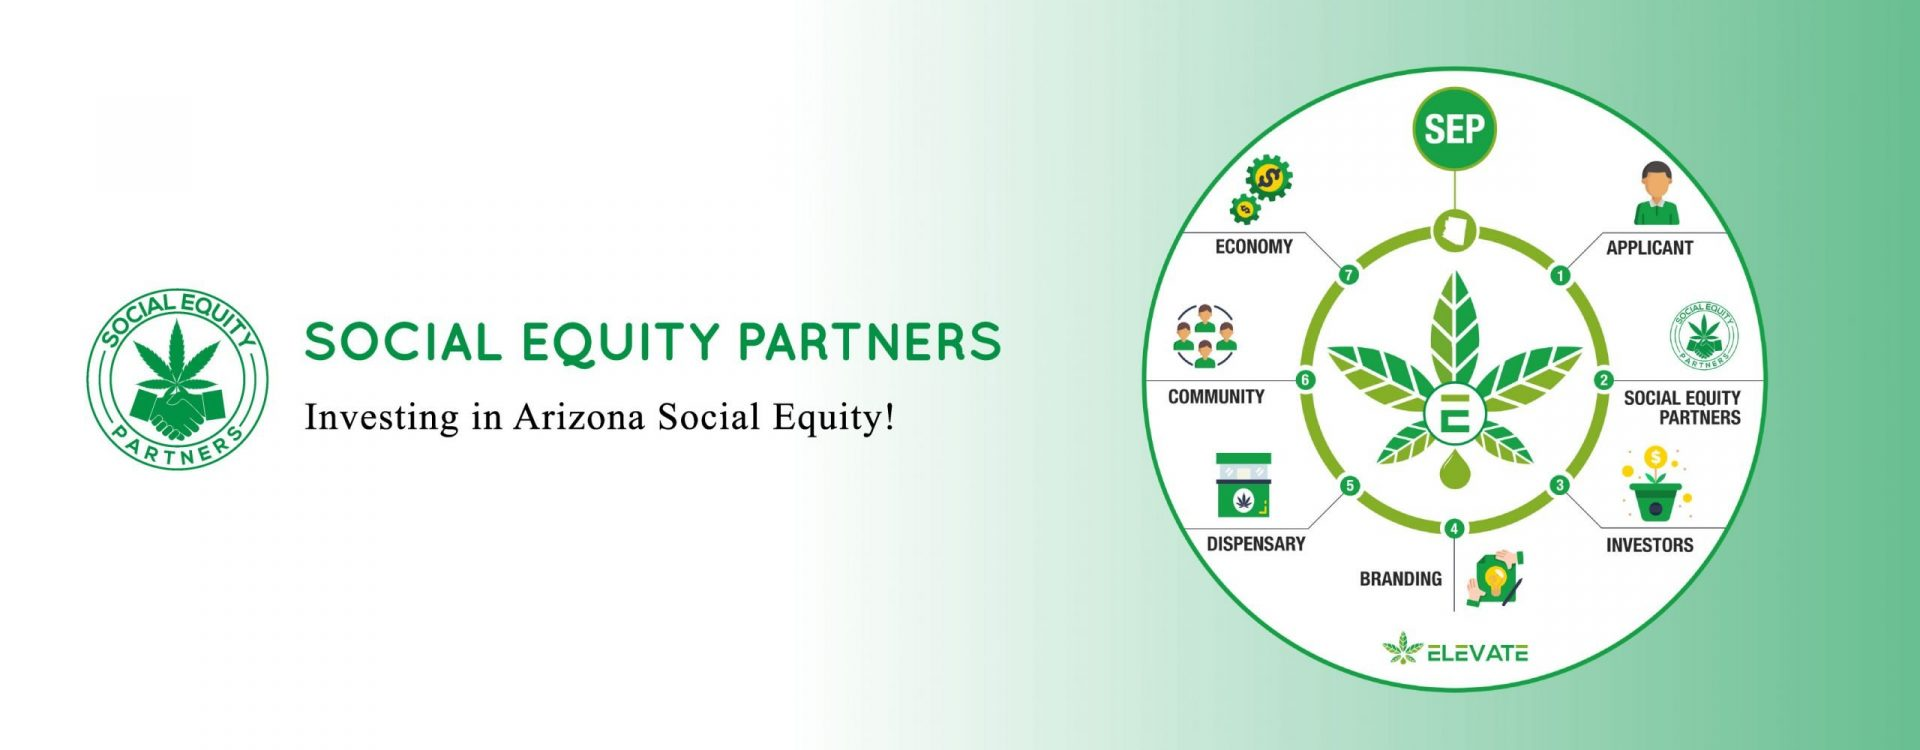 Social Equity Partners